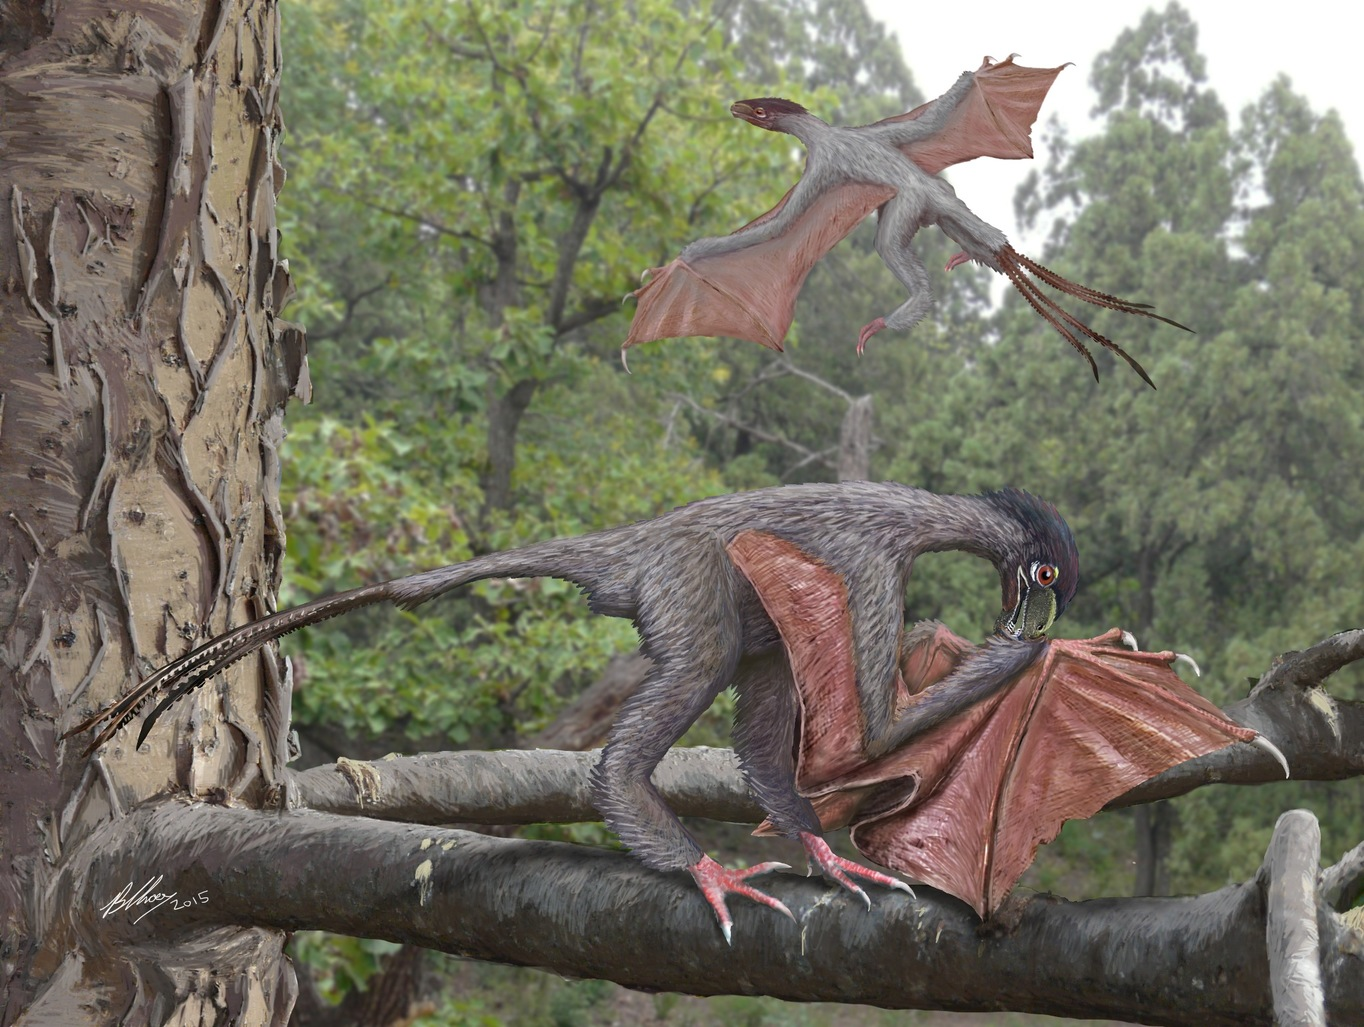 a bizarre new flying dinosaur with batlike wings and